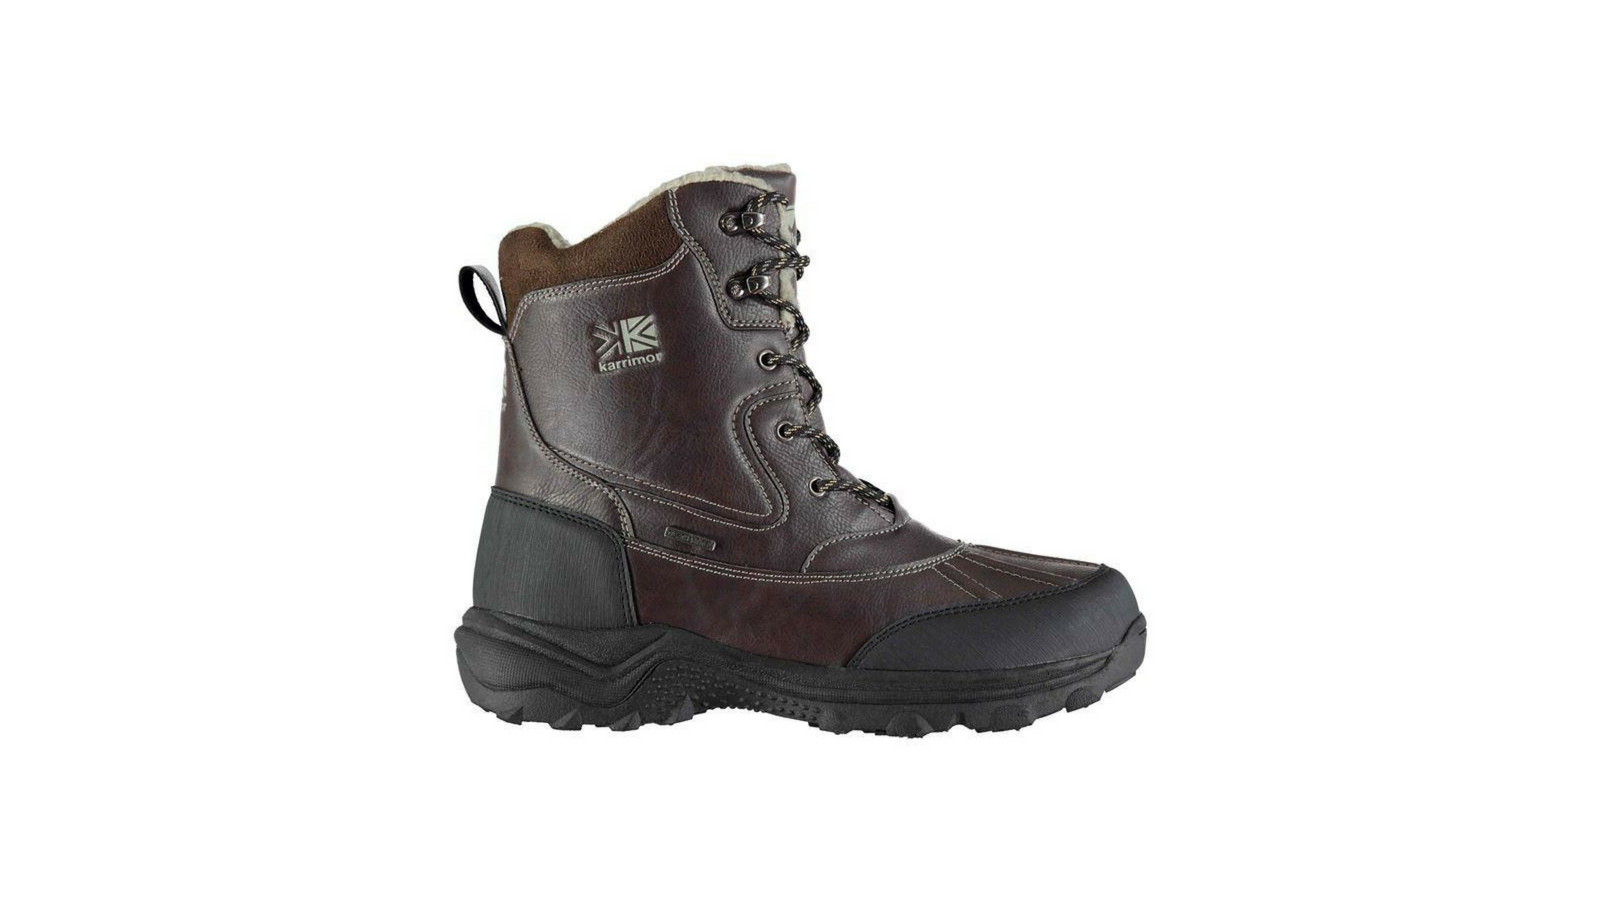 92d8c3613e52 Best snow boots  Waterproof and warm winter boots